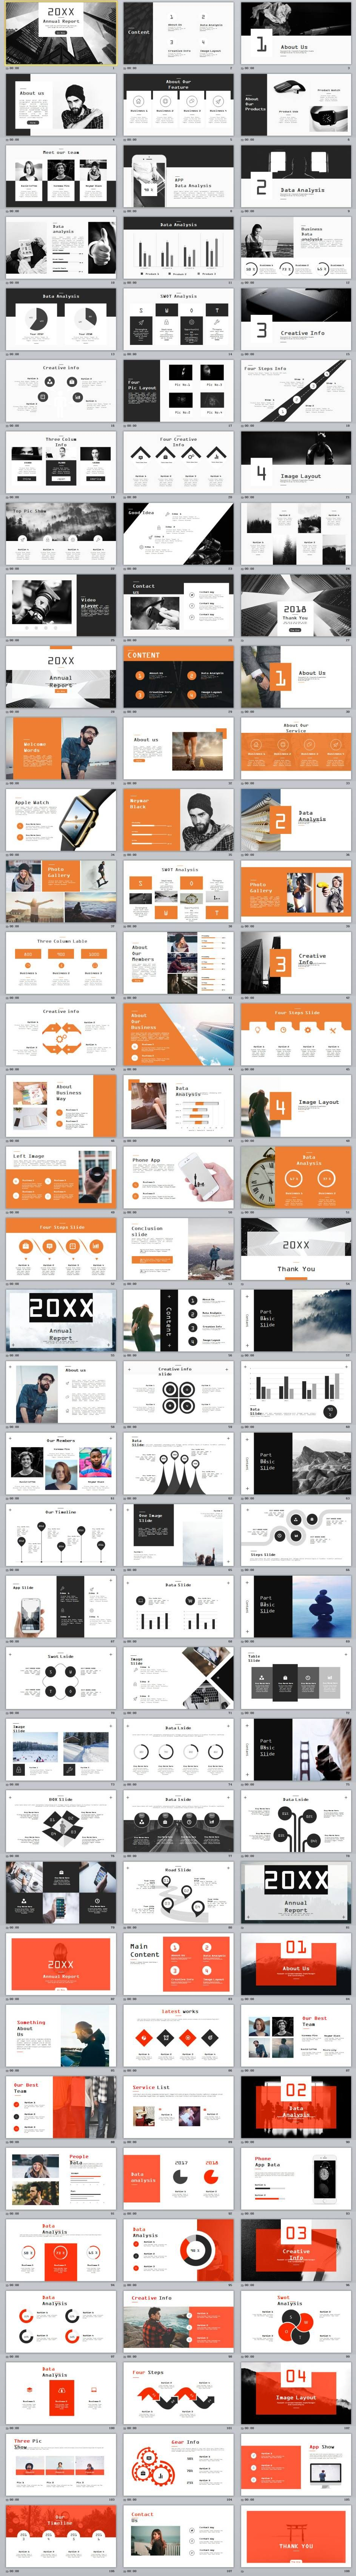 In Company Annual Report Powerpoint Template  Annual Reports